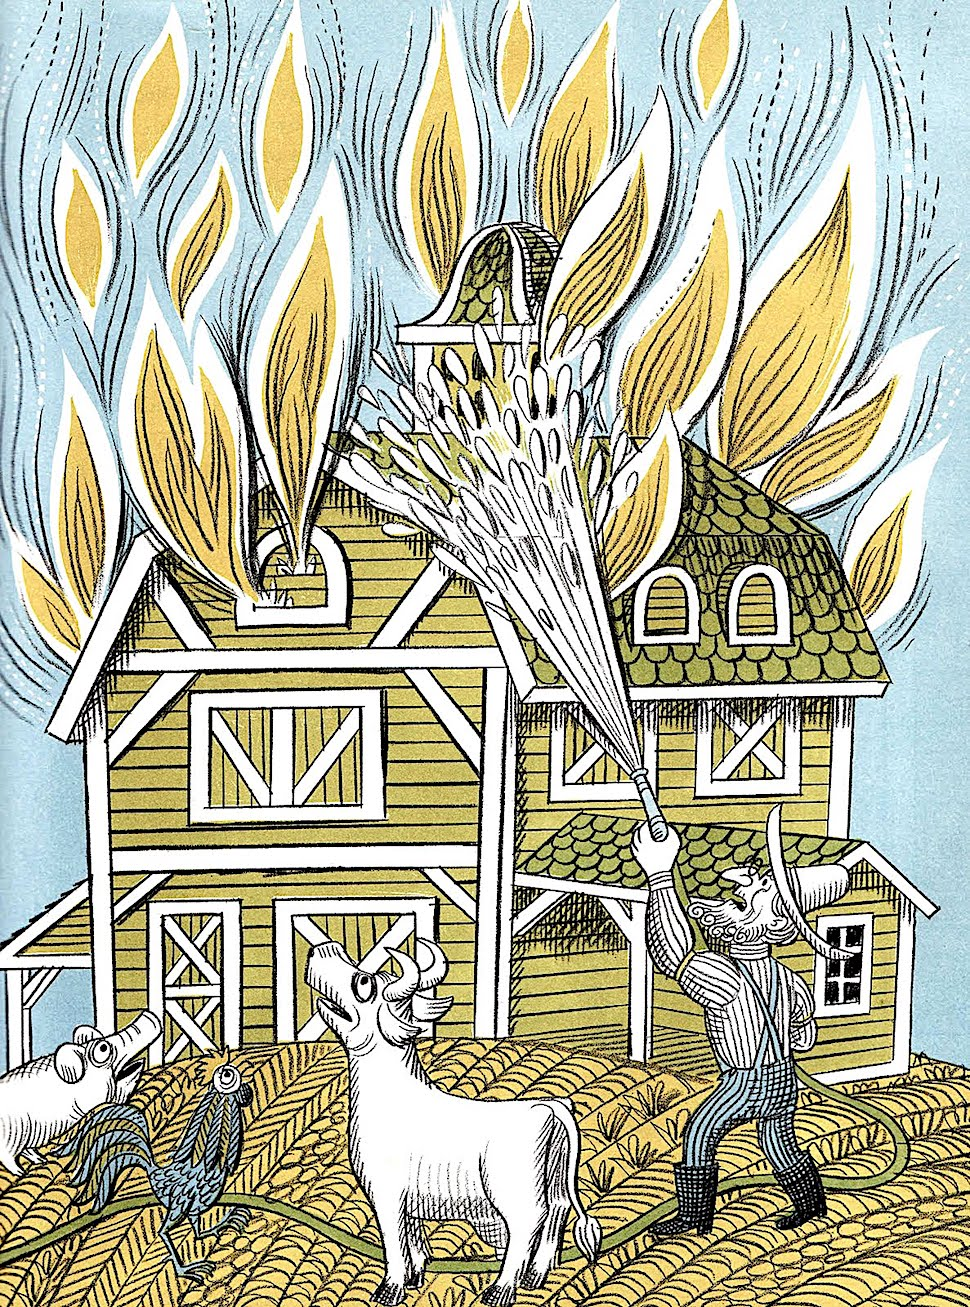 an illustration by Jim Flora of a farmer fighting fire on his farm